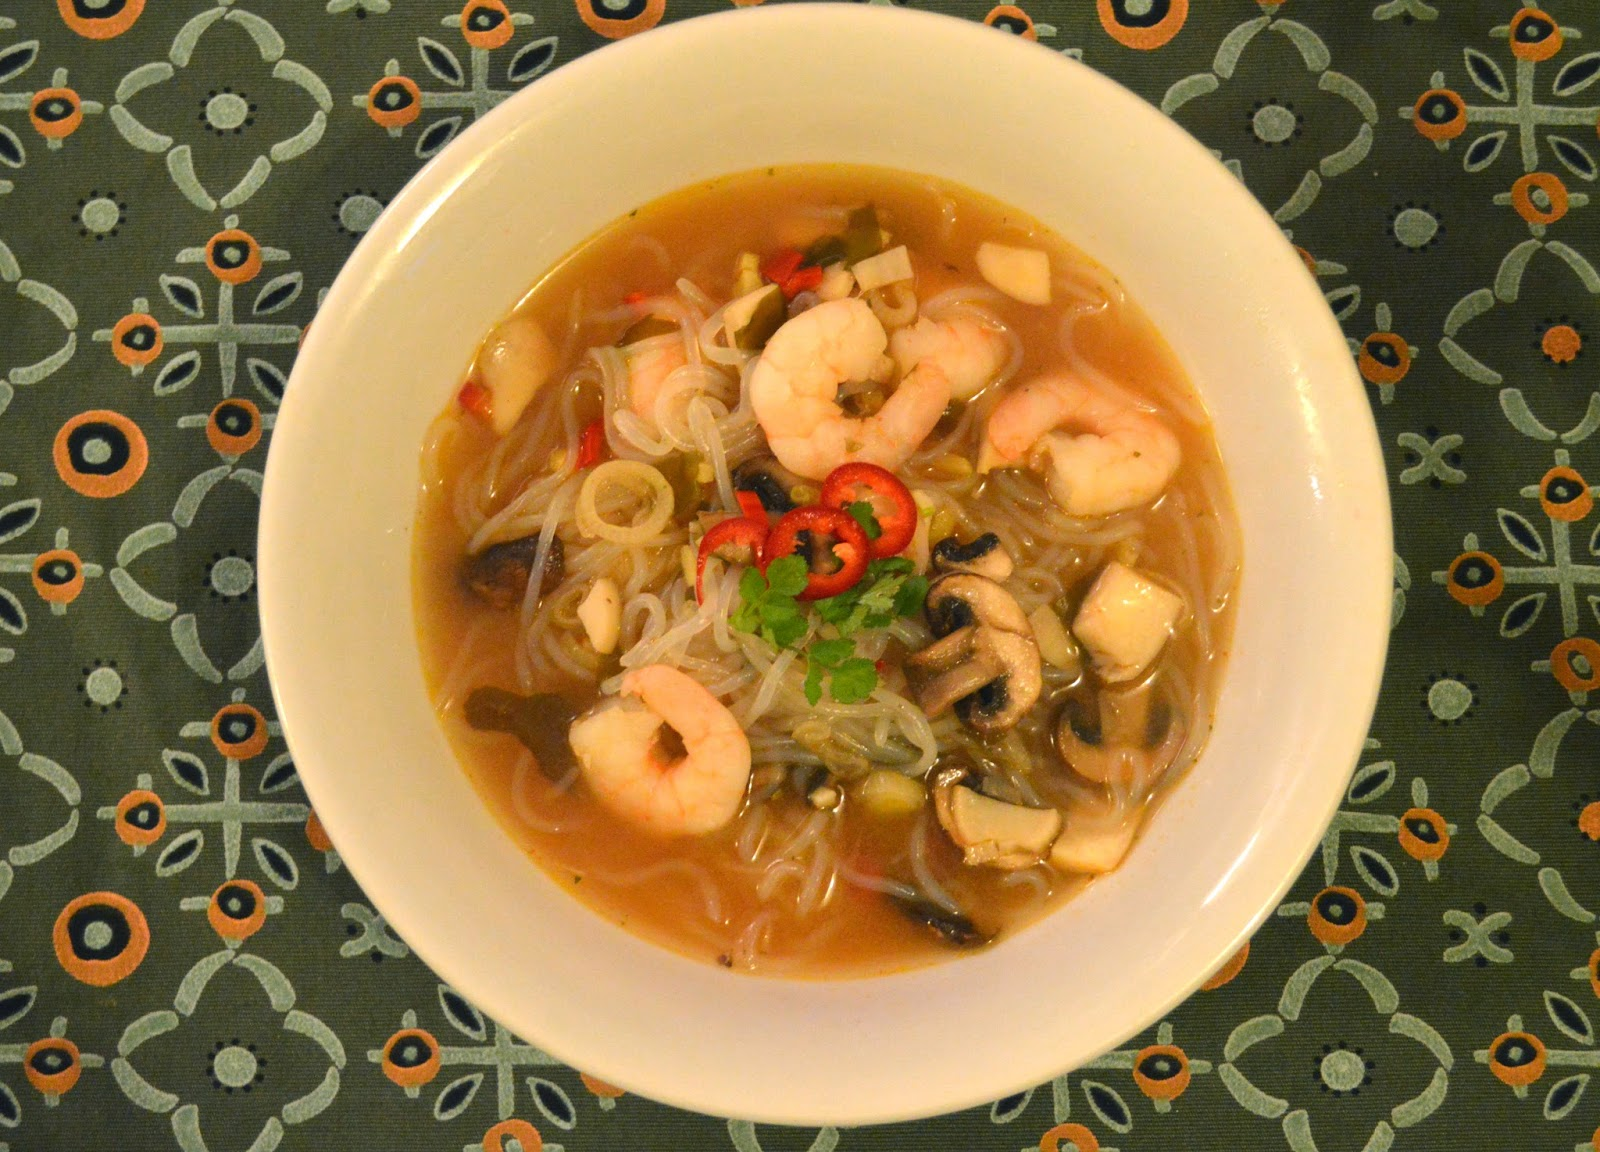 spicy yellow miso soup with king prawns and mushrooms